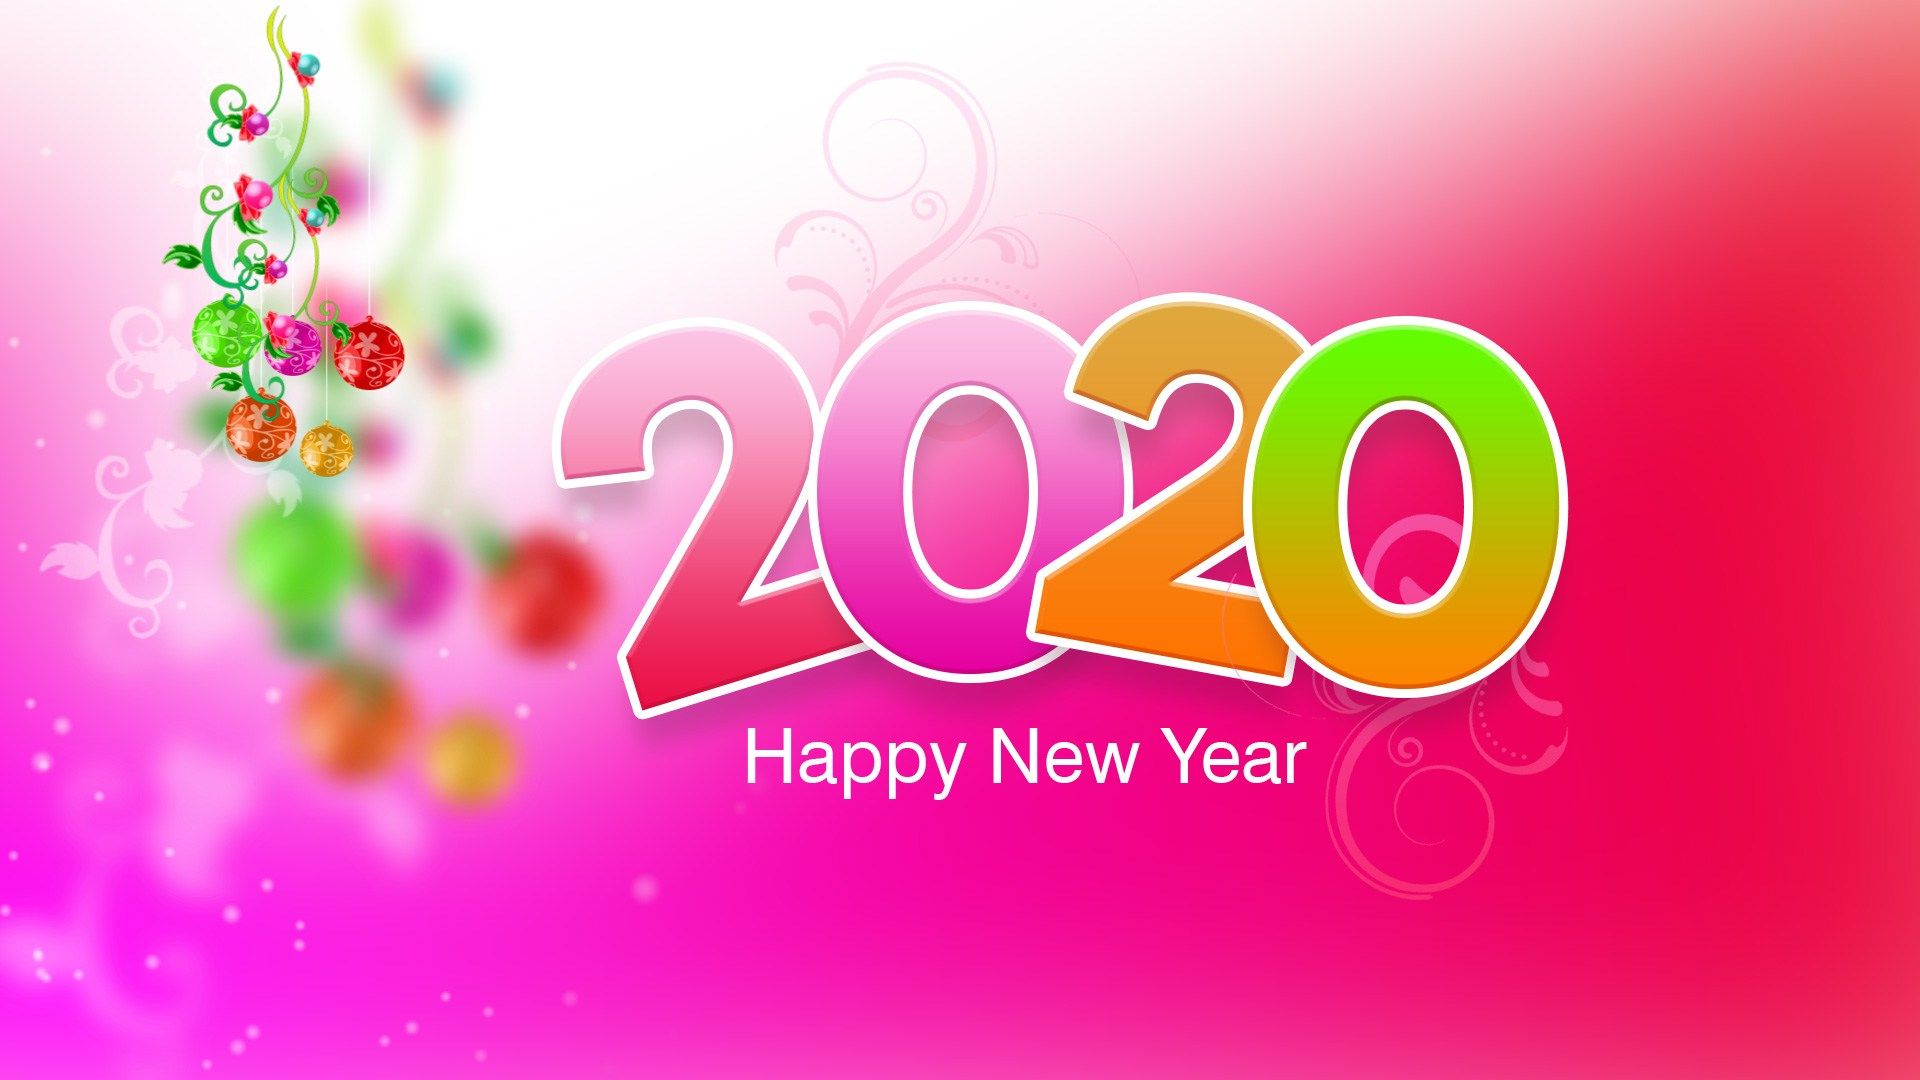 11 diy gifts 2020 (With images) Happy new year greetings